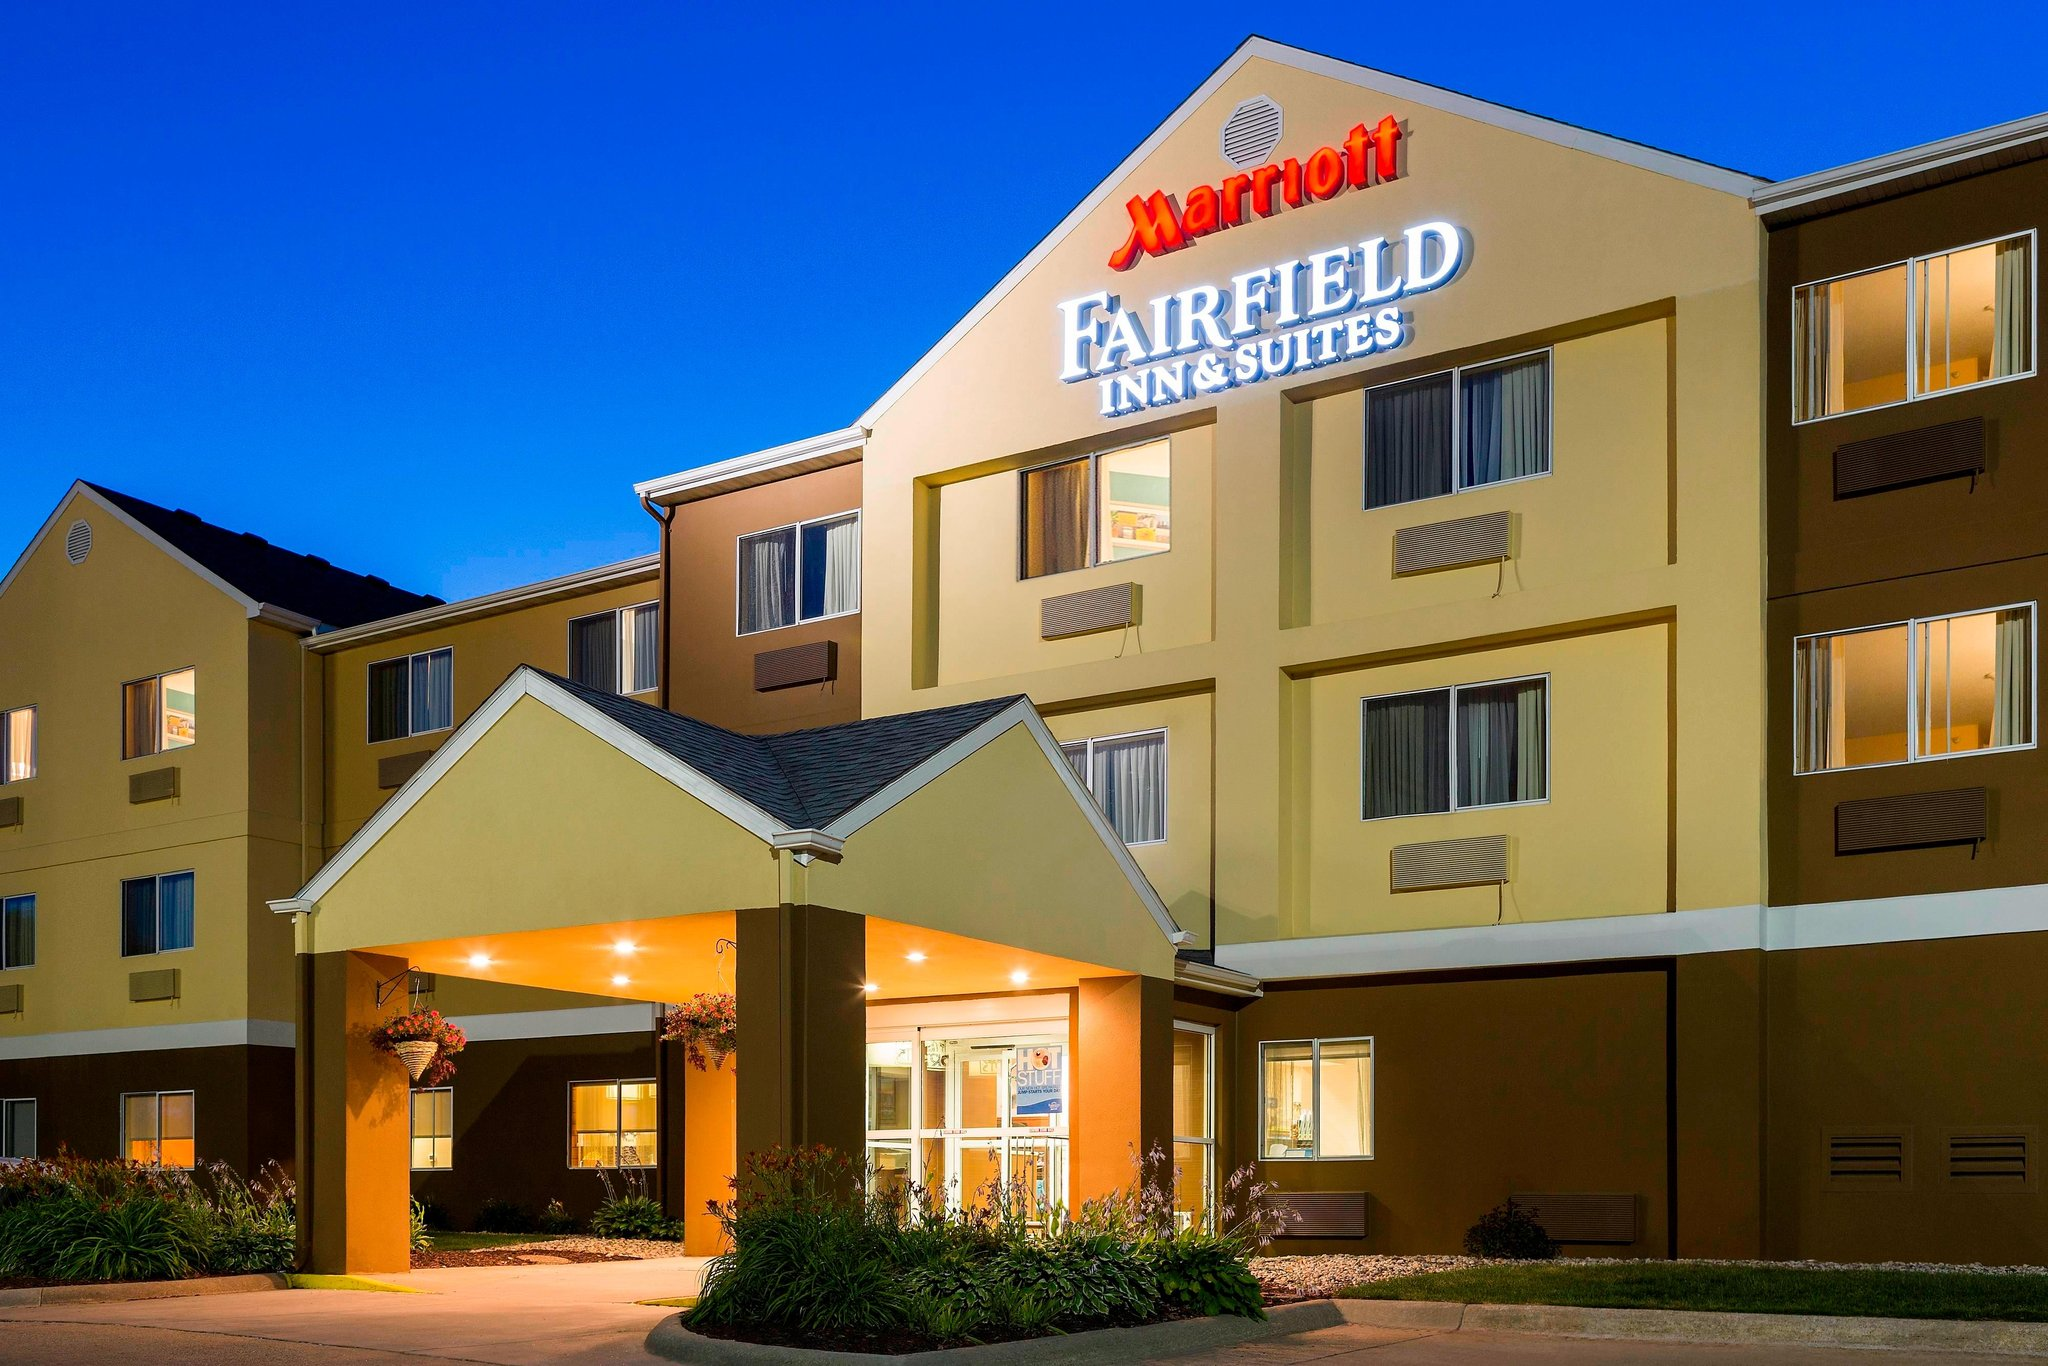 Fairfield Inn and Suites by Marriott Oshkosh